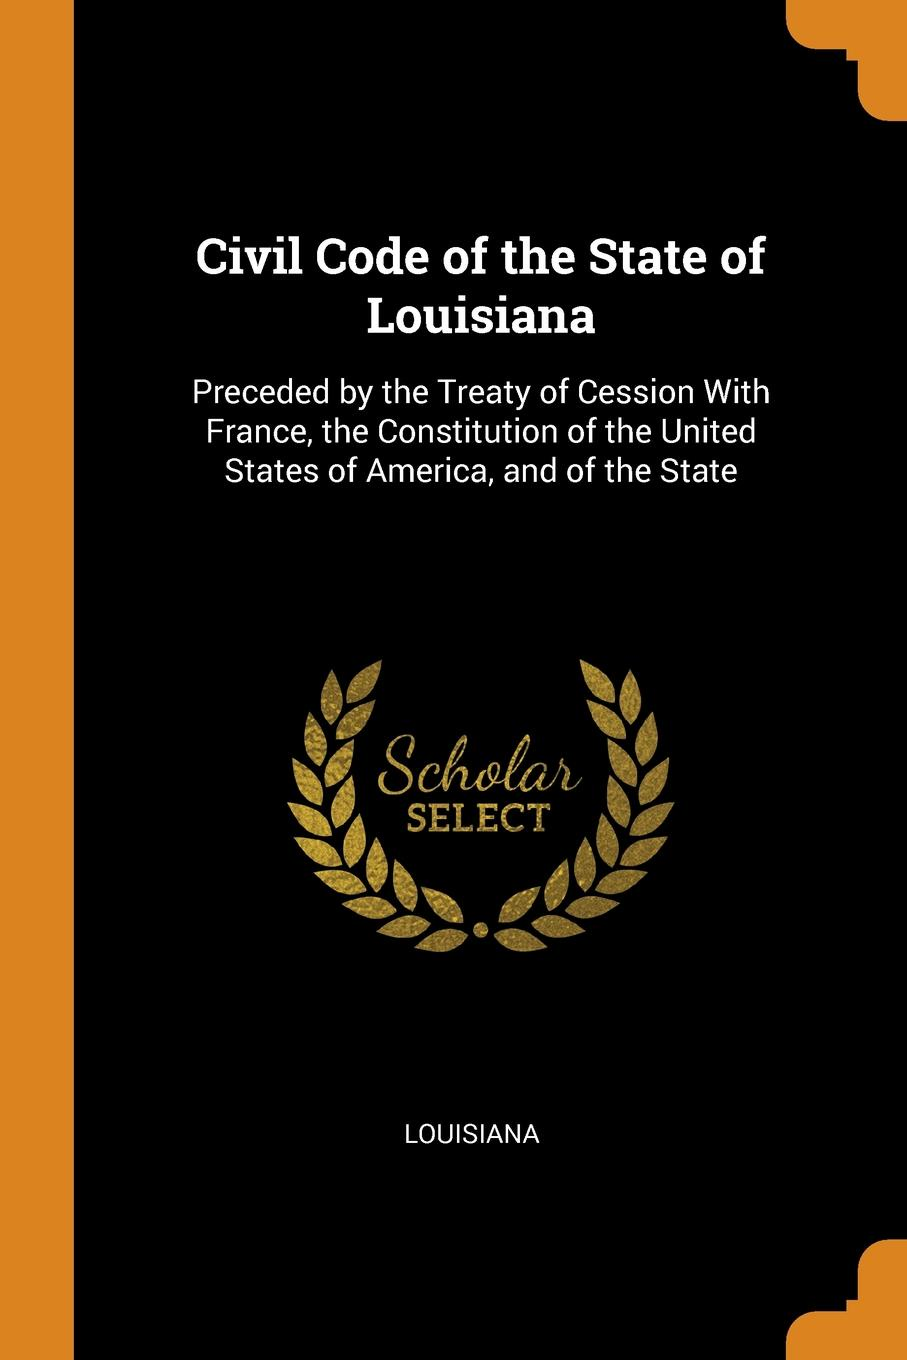 Civil Code of the State of Louisiana. Preceded by the Treaty of Cession With France, the Constitution of the United States of America, and of the State. Louisiana